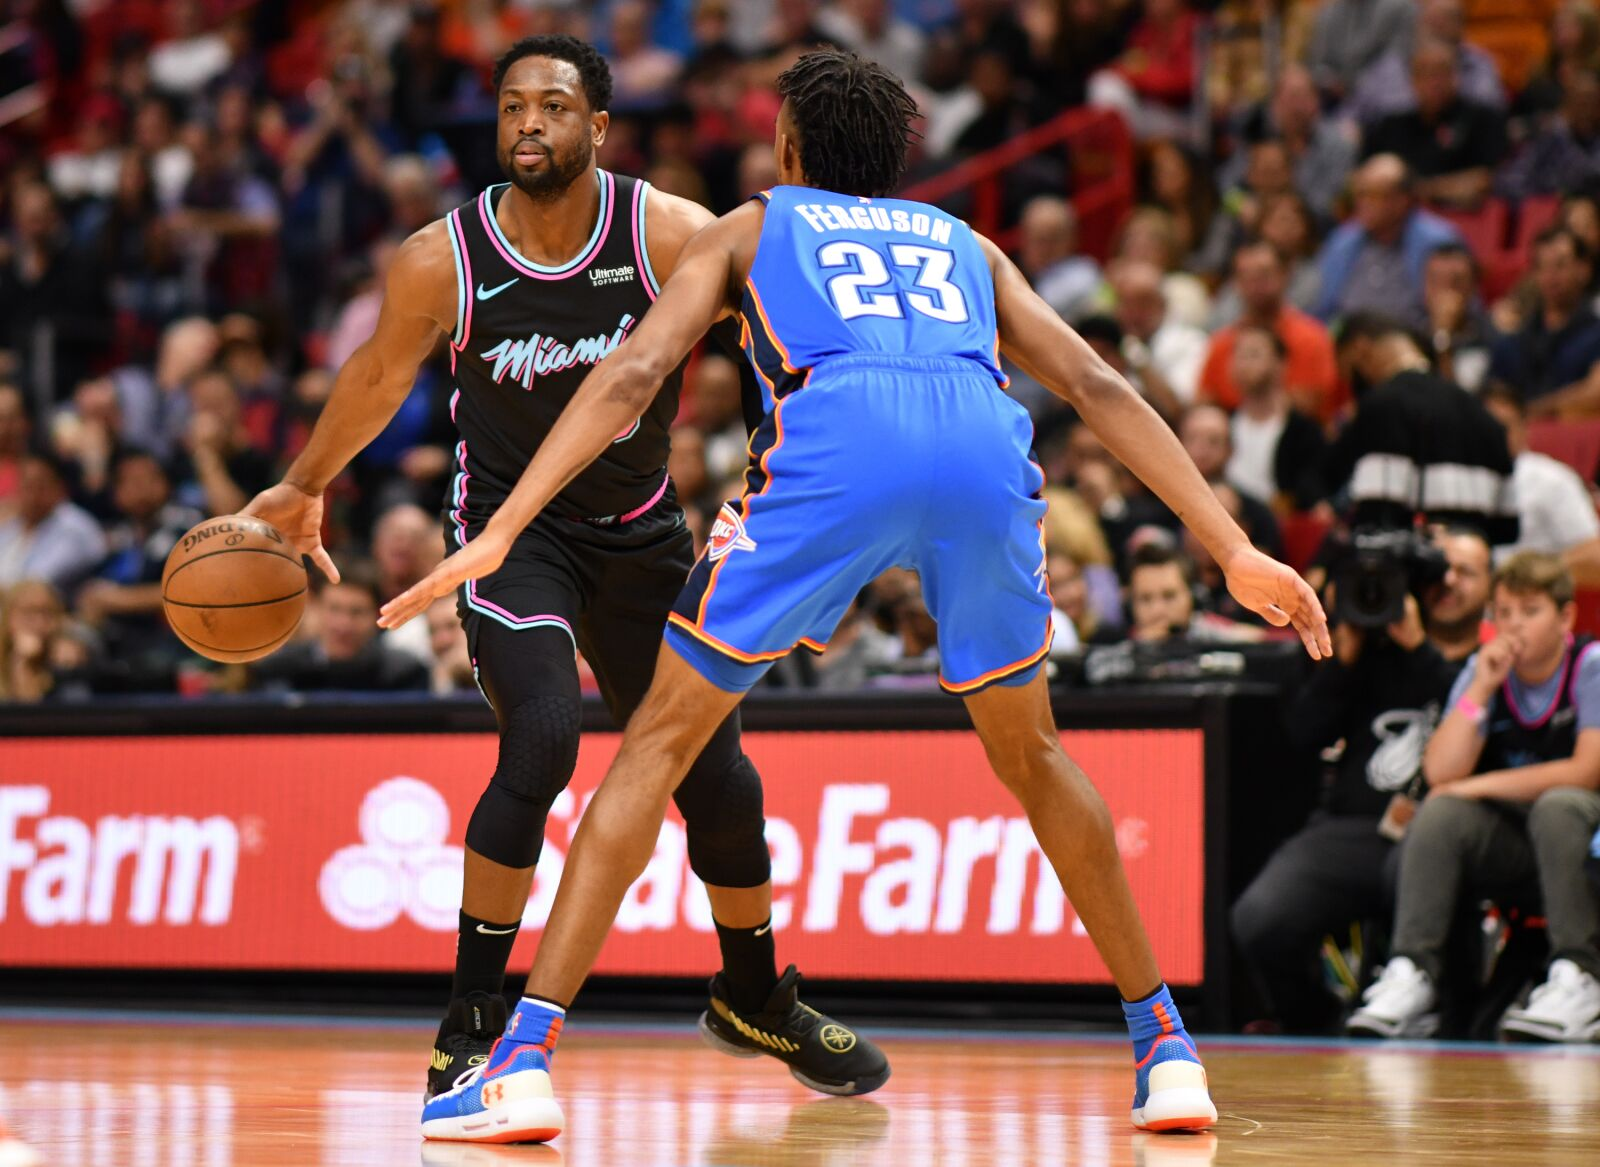 Miami Heat: Preview vs the Russell Westbrook-less Thunder